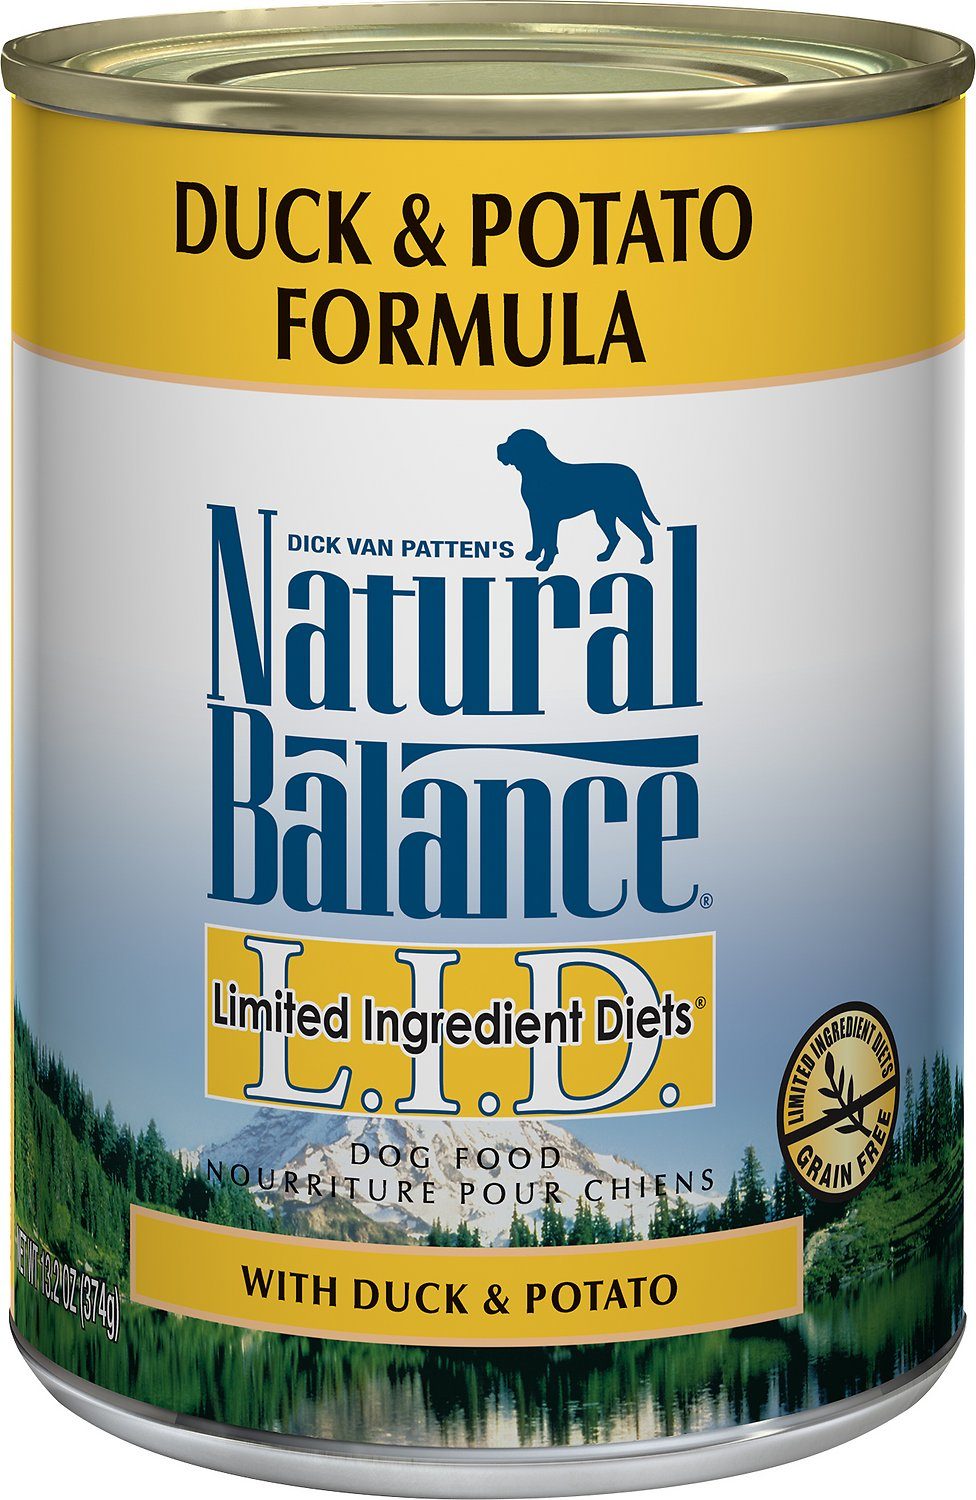 Natural Balance L.I.D. Limited Ingredient Diets Duck & Potato Formula Grain-Free Canned Dog Food Image